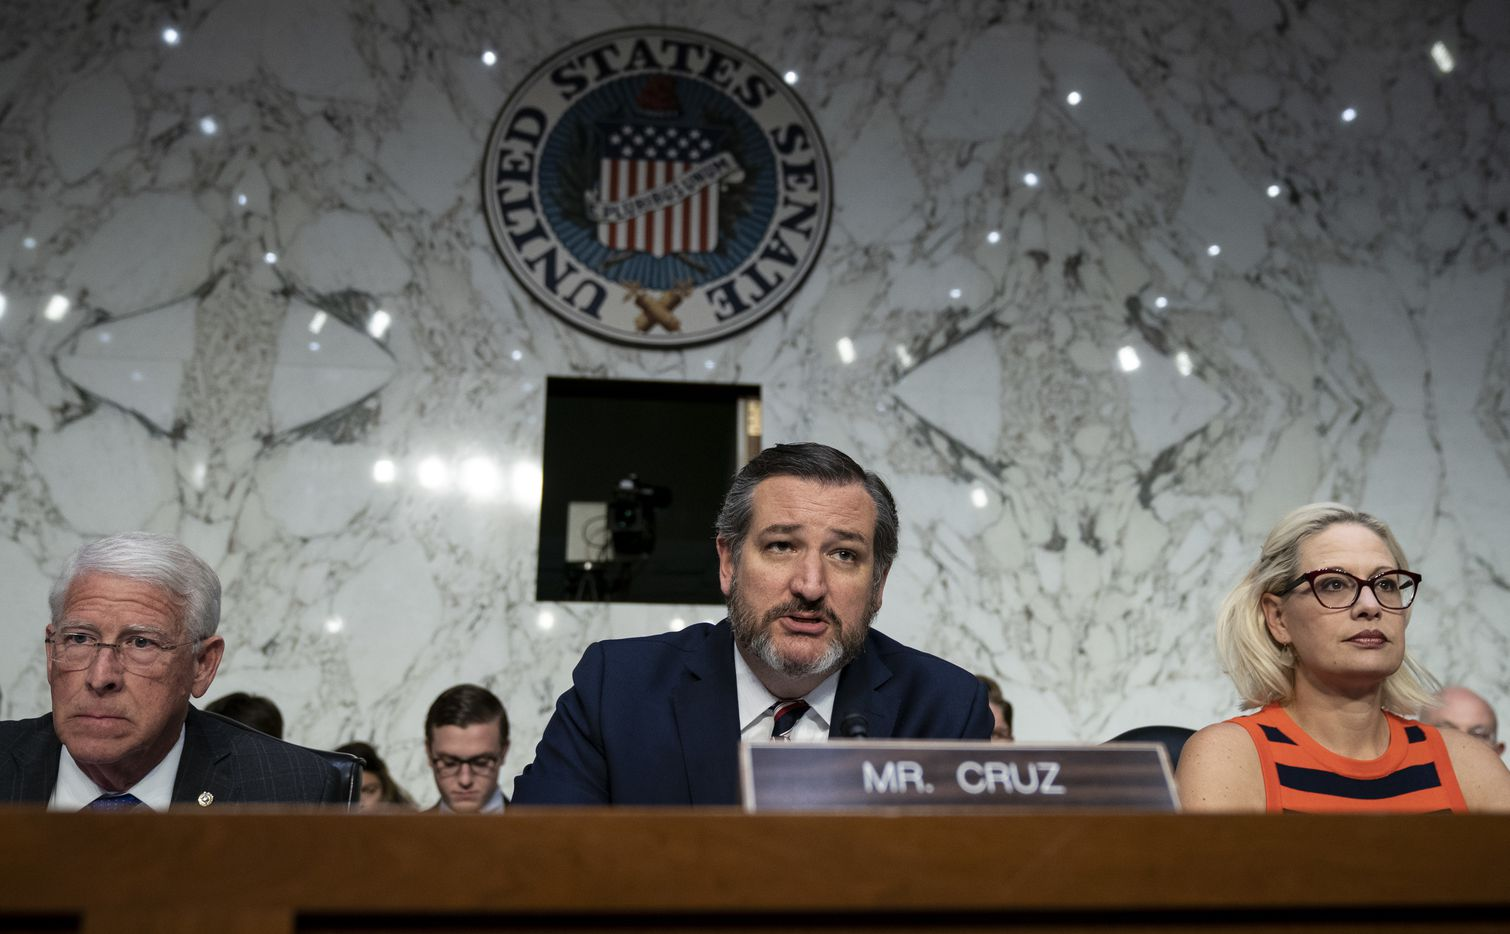 "Texas Sen. Ted Cruz, head of the Senate's aviation subcommittee says questions raised about the FAA's oversight of aircraft manufacturers ""threaten to erode trust int he entire system."